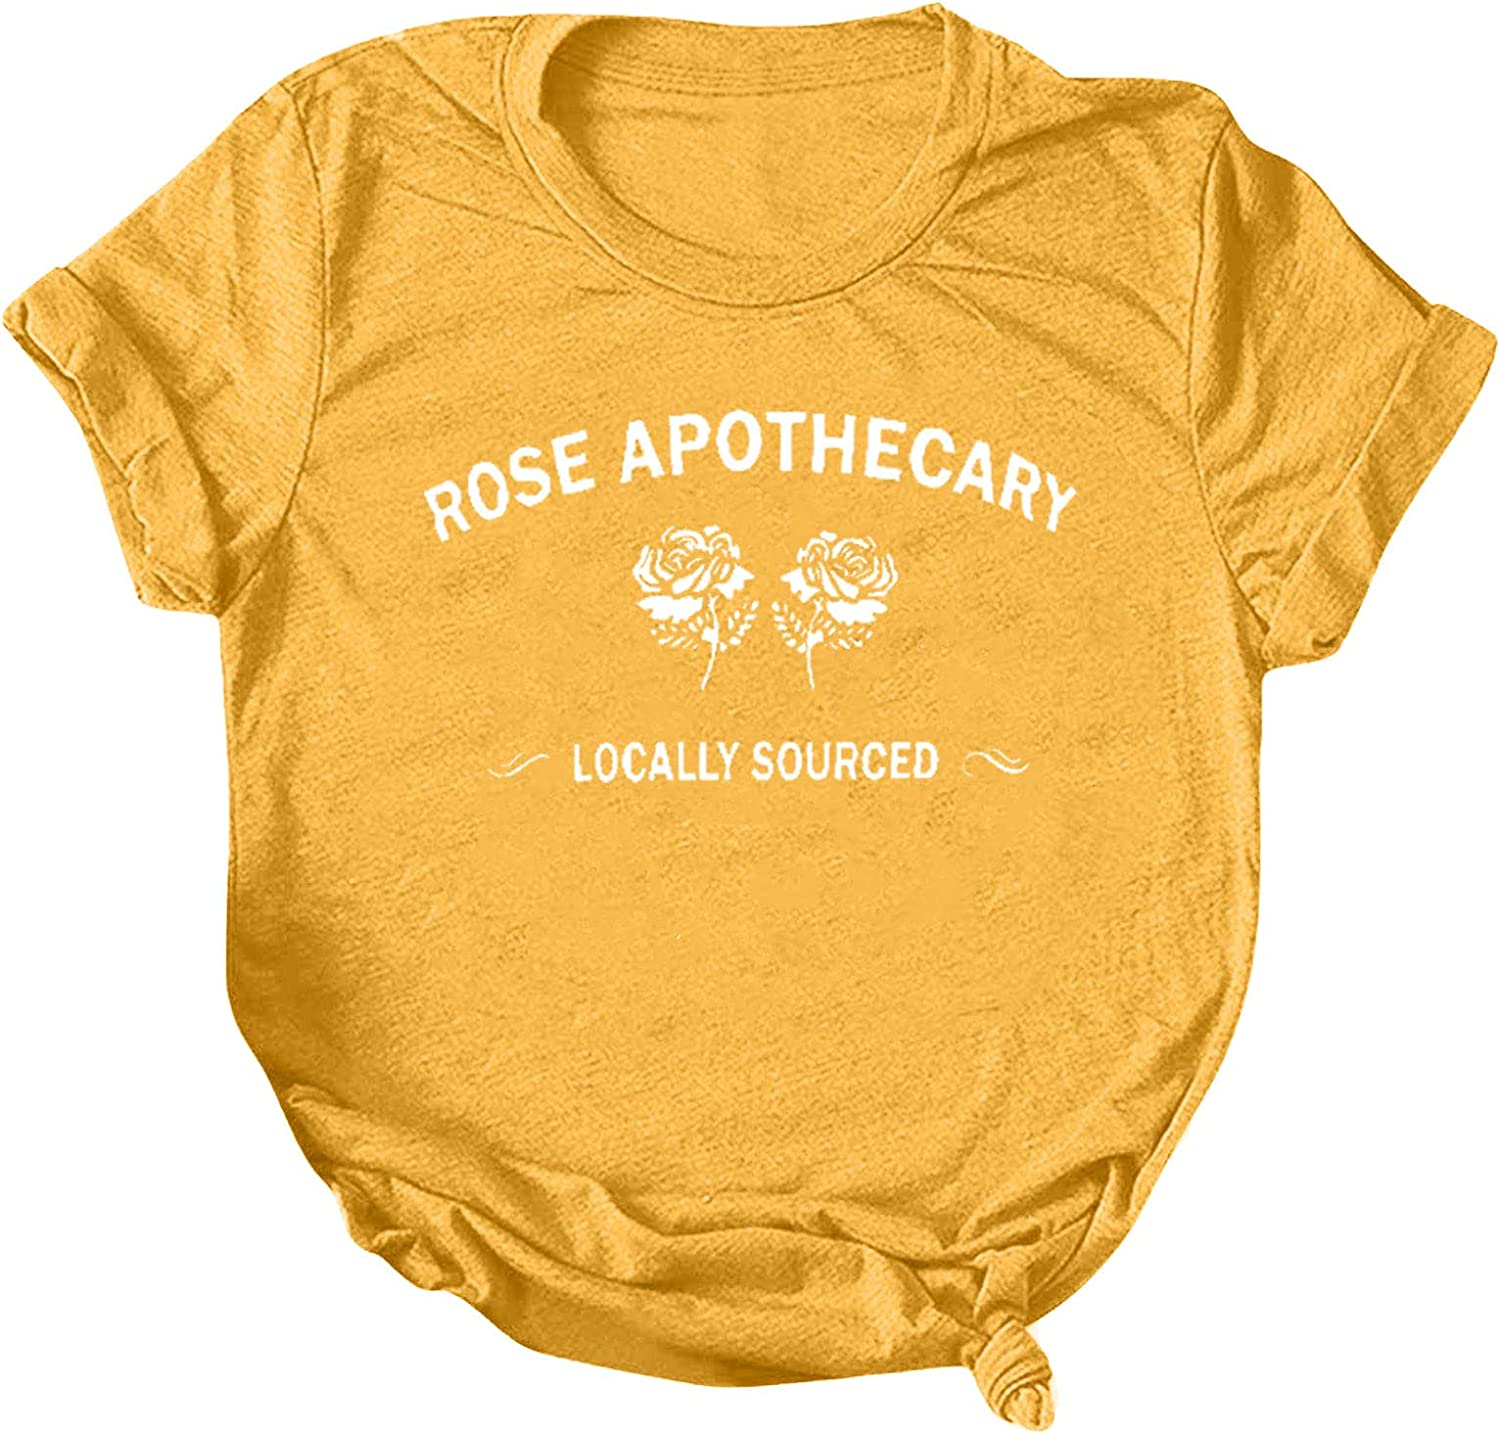 Womens Short Sleeve Tops, naioewe Shirts for Women Rose Apothecary Funny Letter Print O-Neck T-Shirt Blouse Tops Casual Graphic Tees